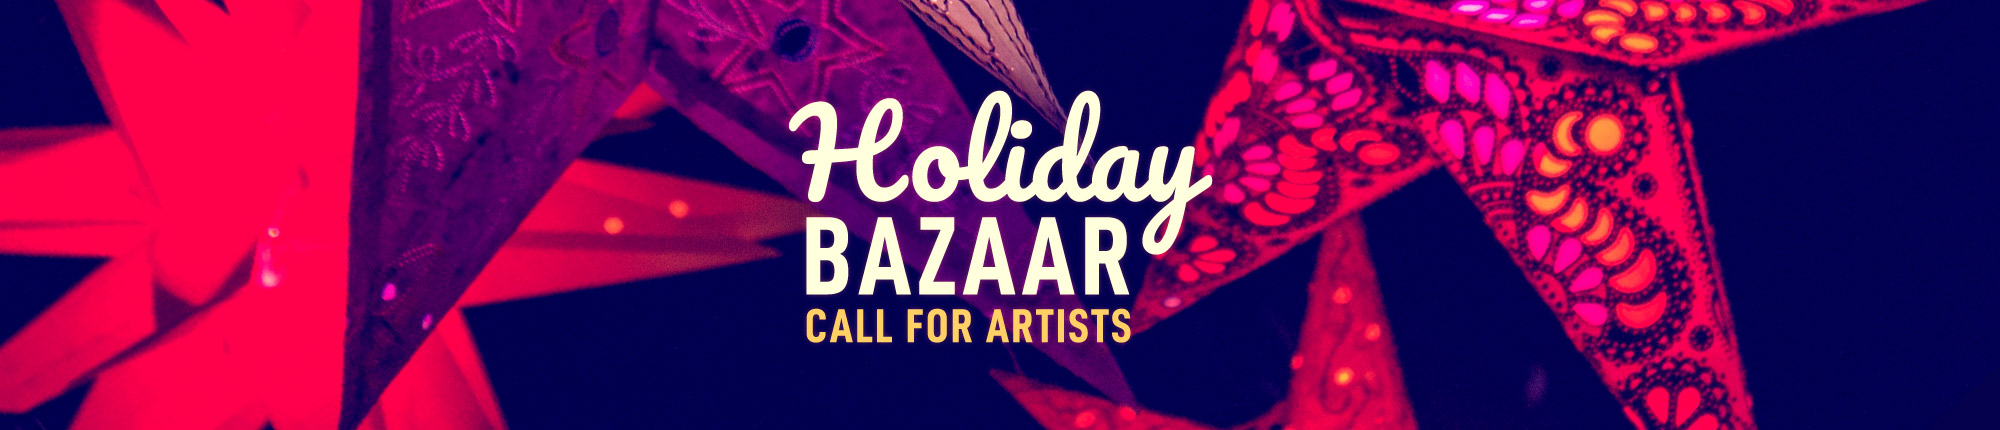 Holiday Bazaar Call For Artists